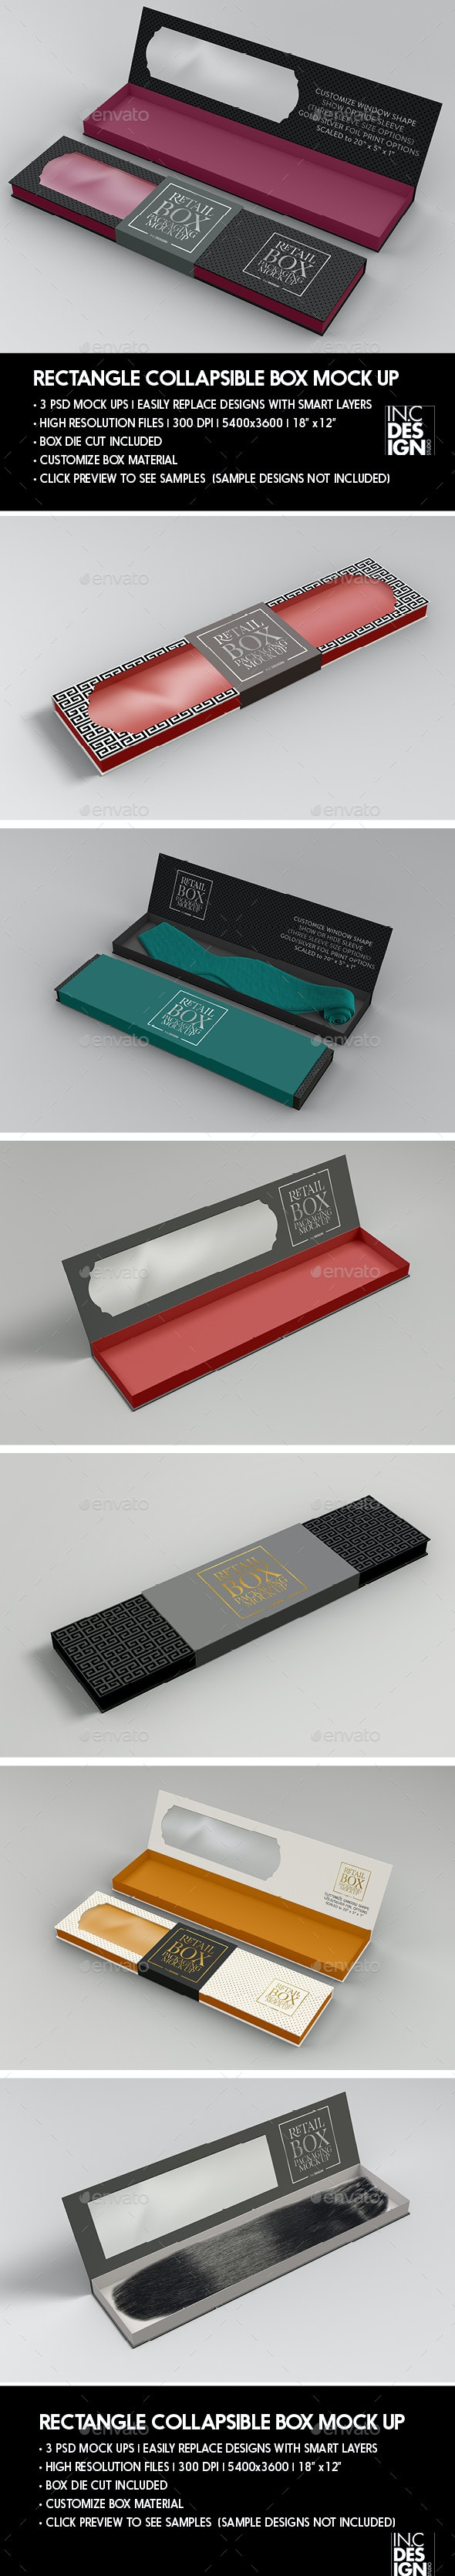 Rectangle Collapsible Box Packaging Mockup - Packaging Product Mock-Ups